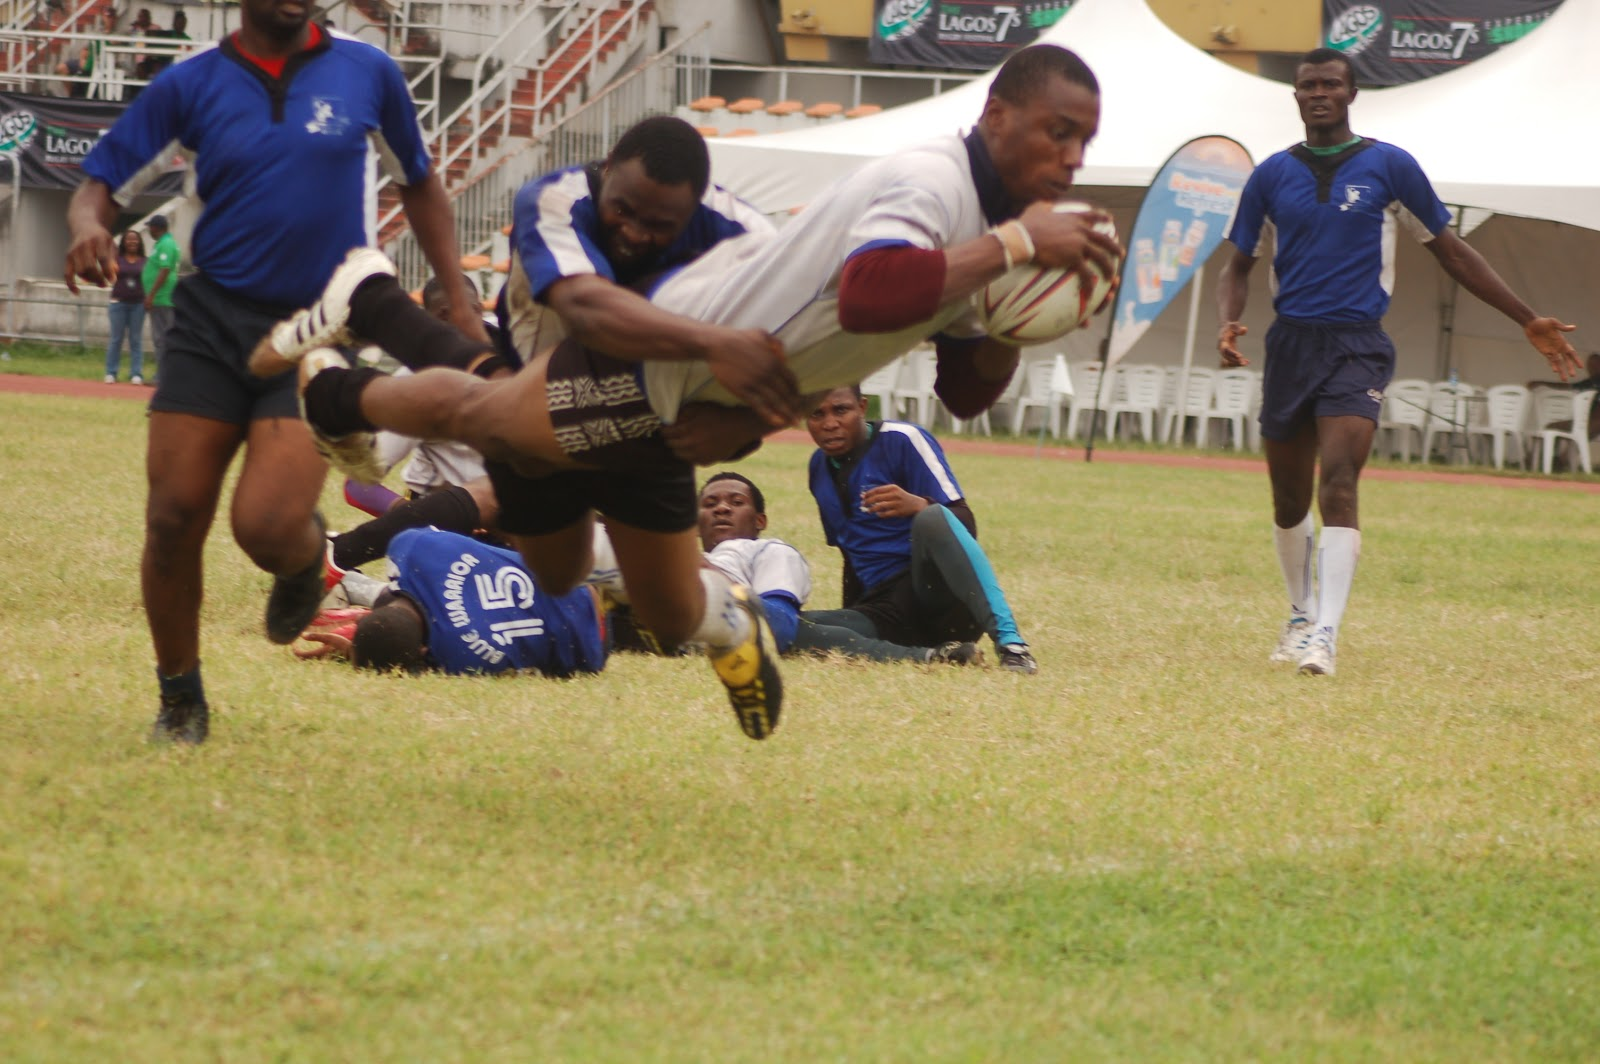 Lagos 7s Rugby action